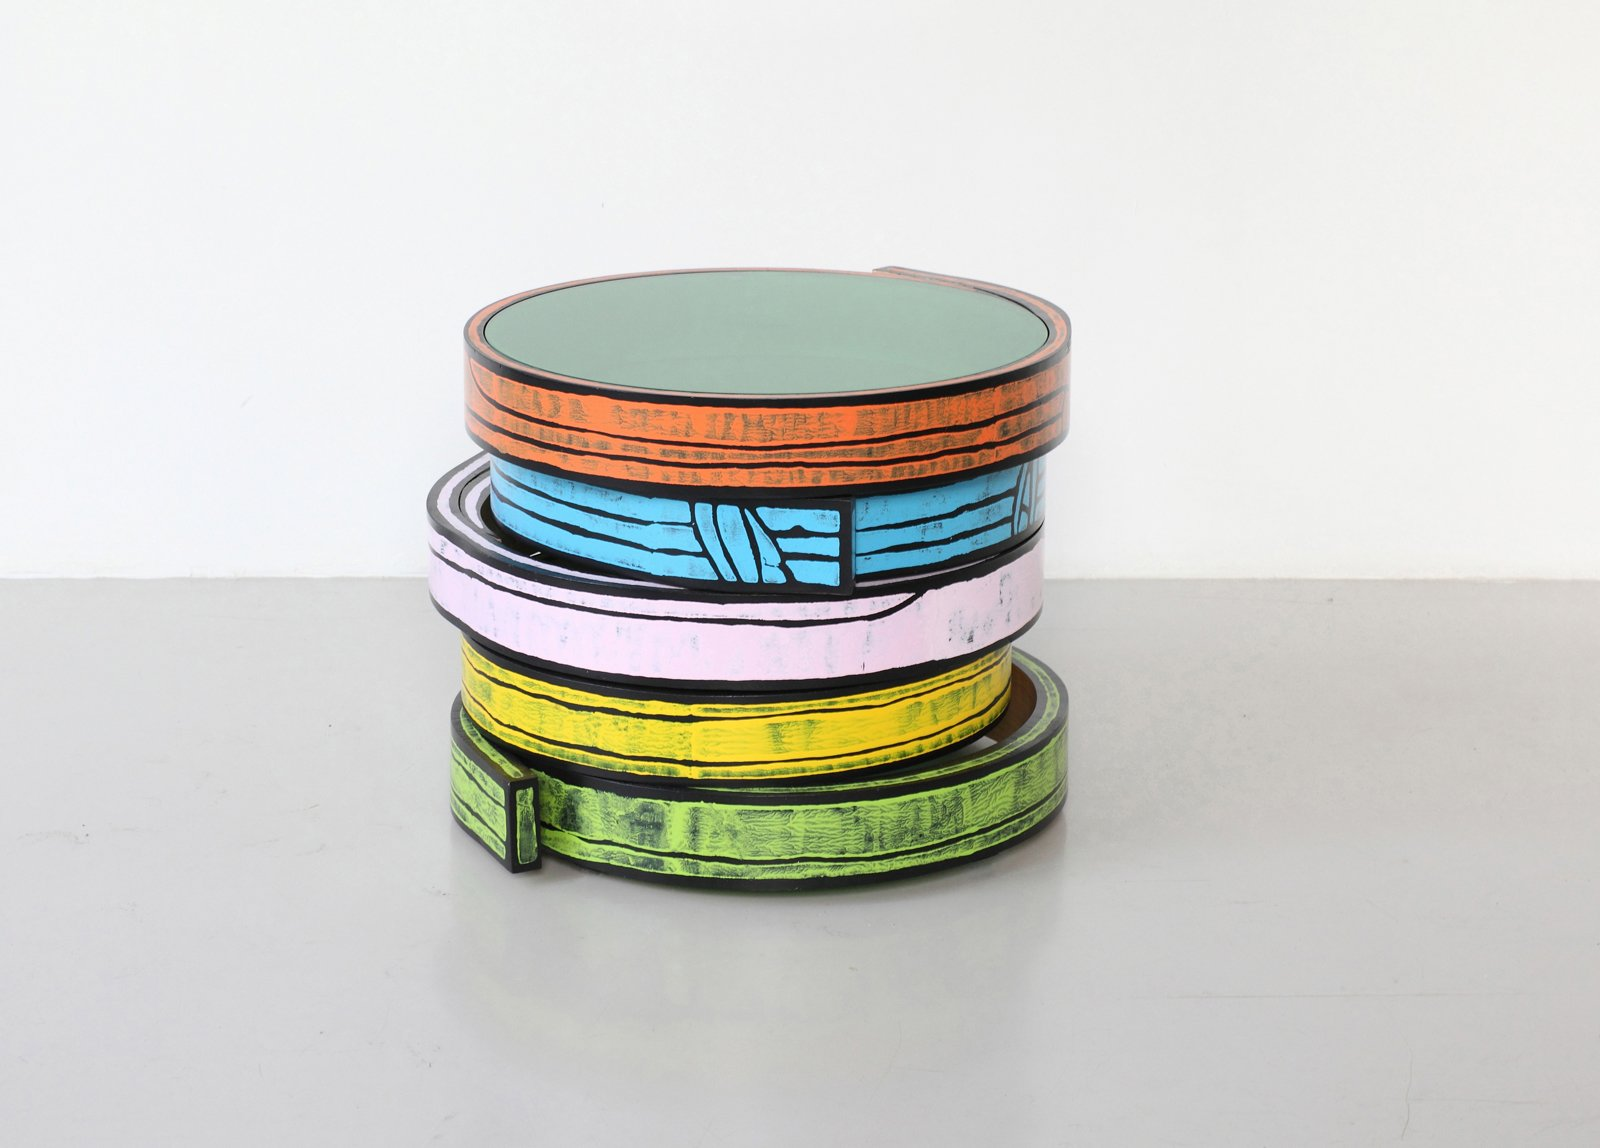 Bent Wood Table, 2012. Printed birch wood and colored glass. By WrongWoods. For Sale $7,500 - $10,000.  Photo 5 of 10 in Design Miami and Art.sy: Partners in Design